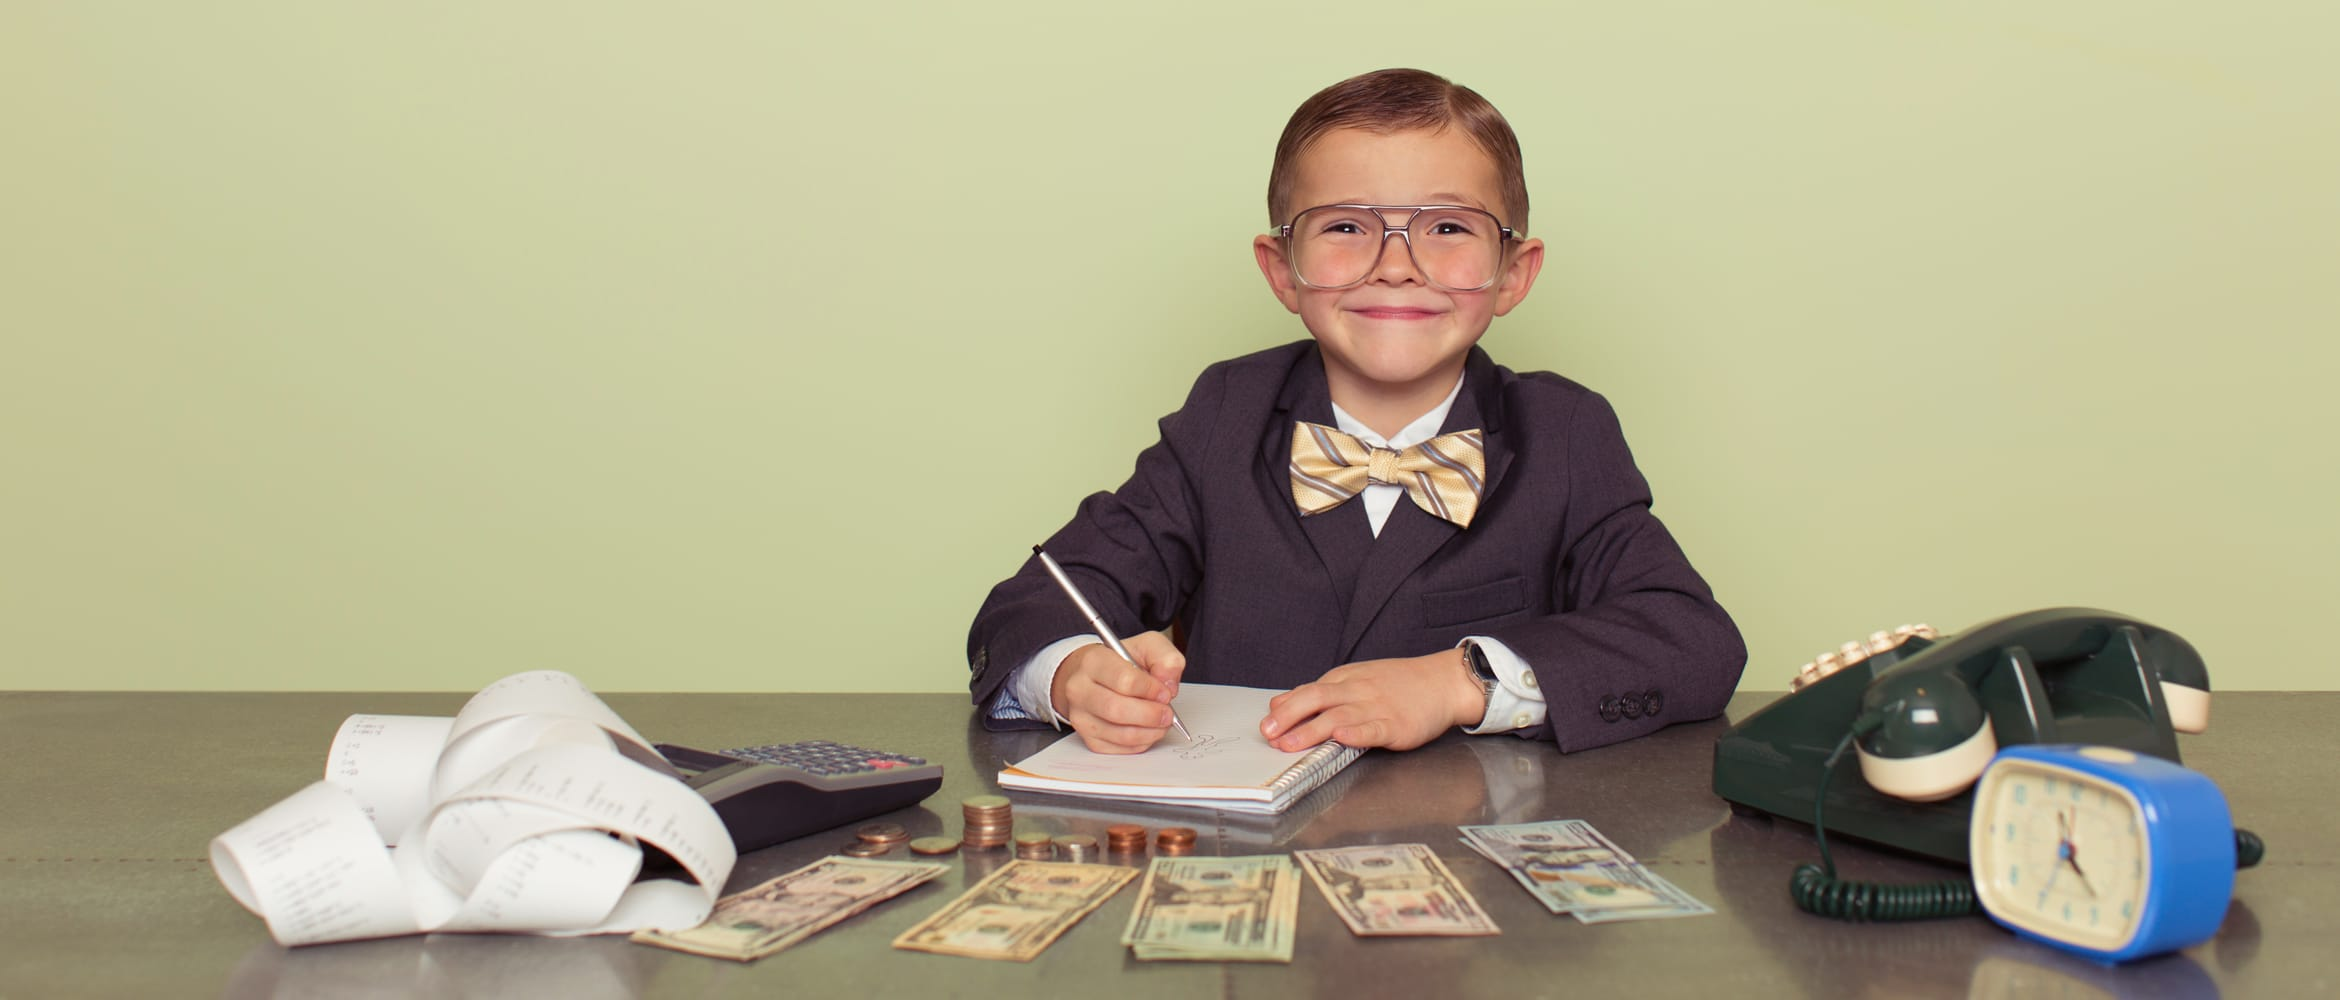 young boy businessman sits behind a desk